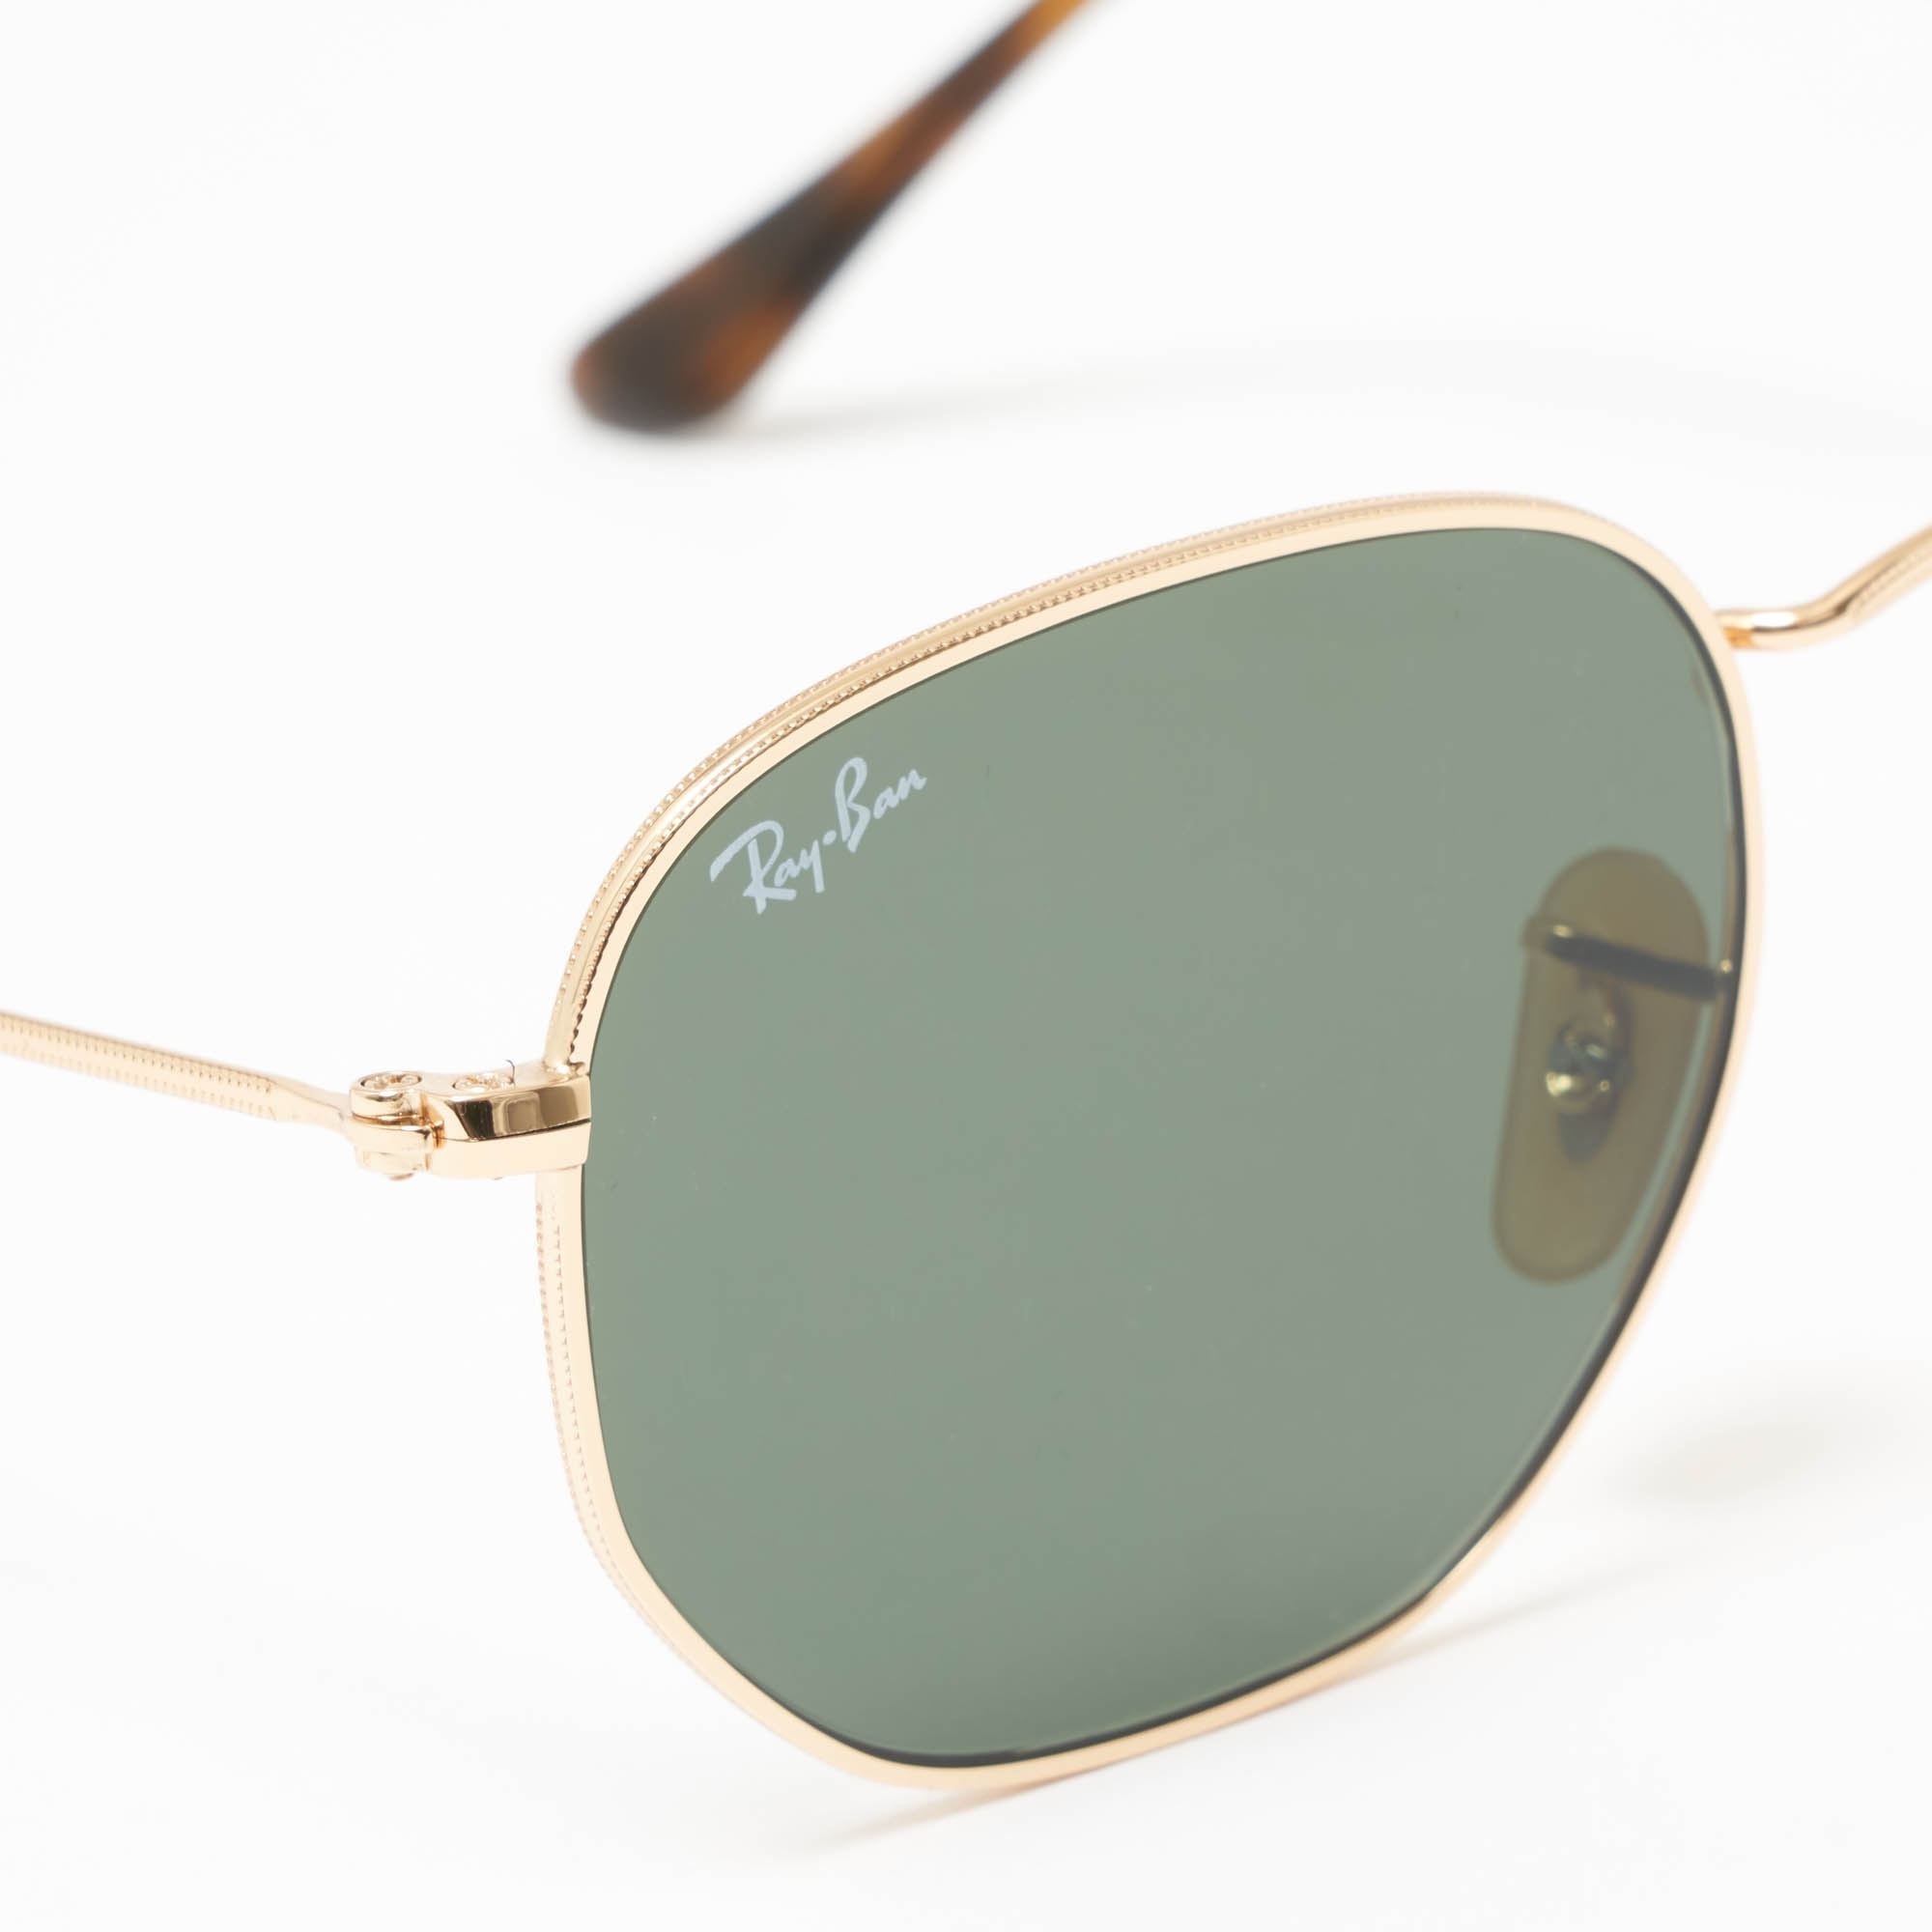 c7f36b3a35b Gold Hexagonal Flat Lens Sunglasses - Green Classic G-15 Lenses